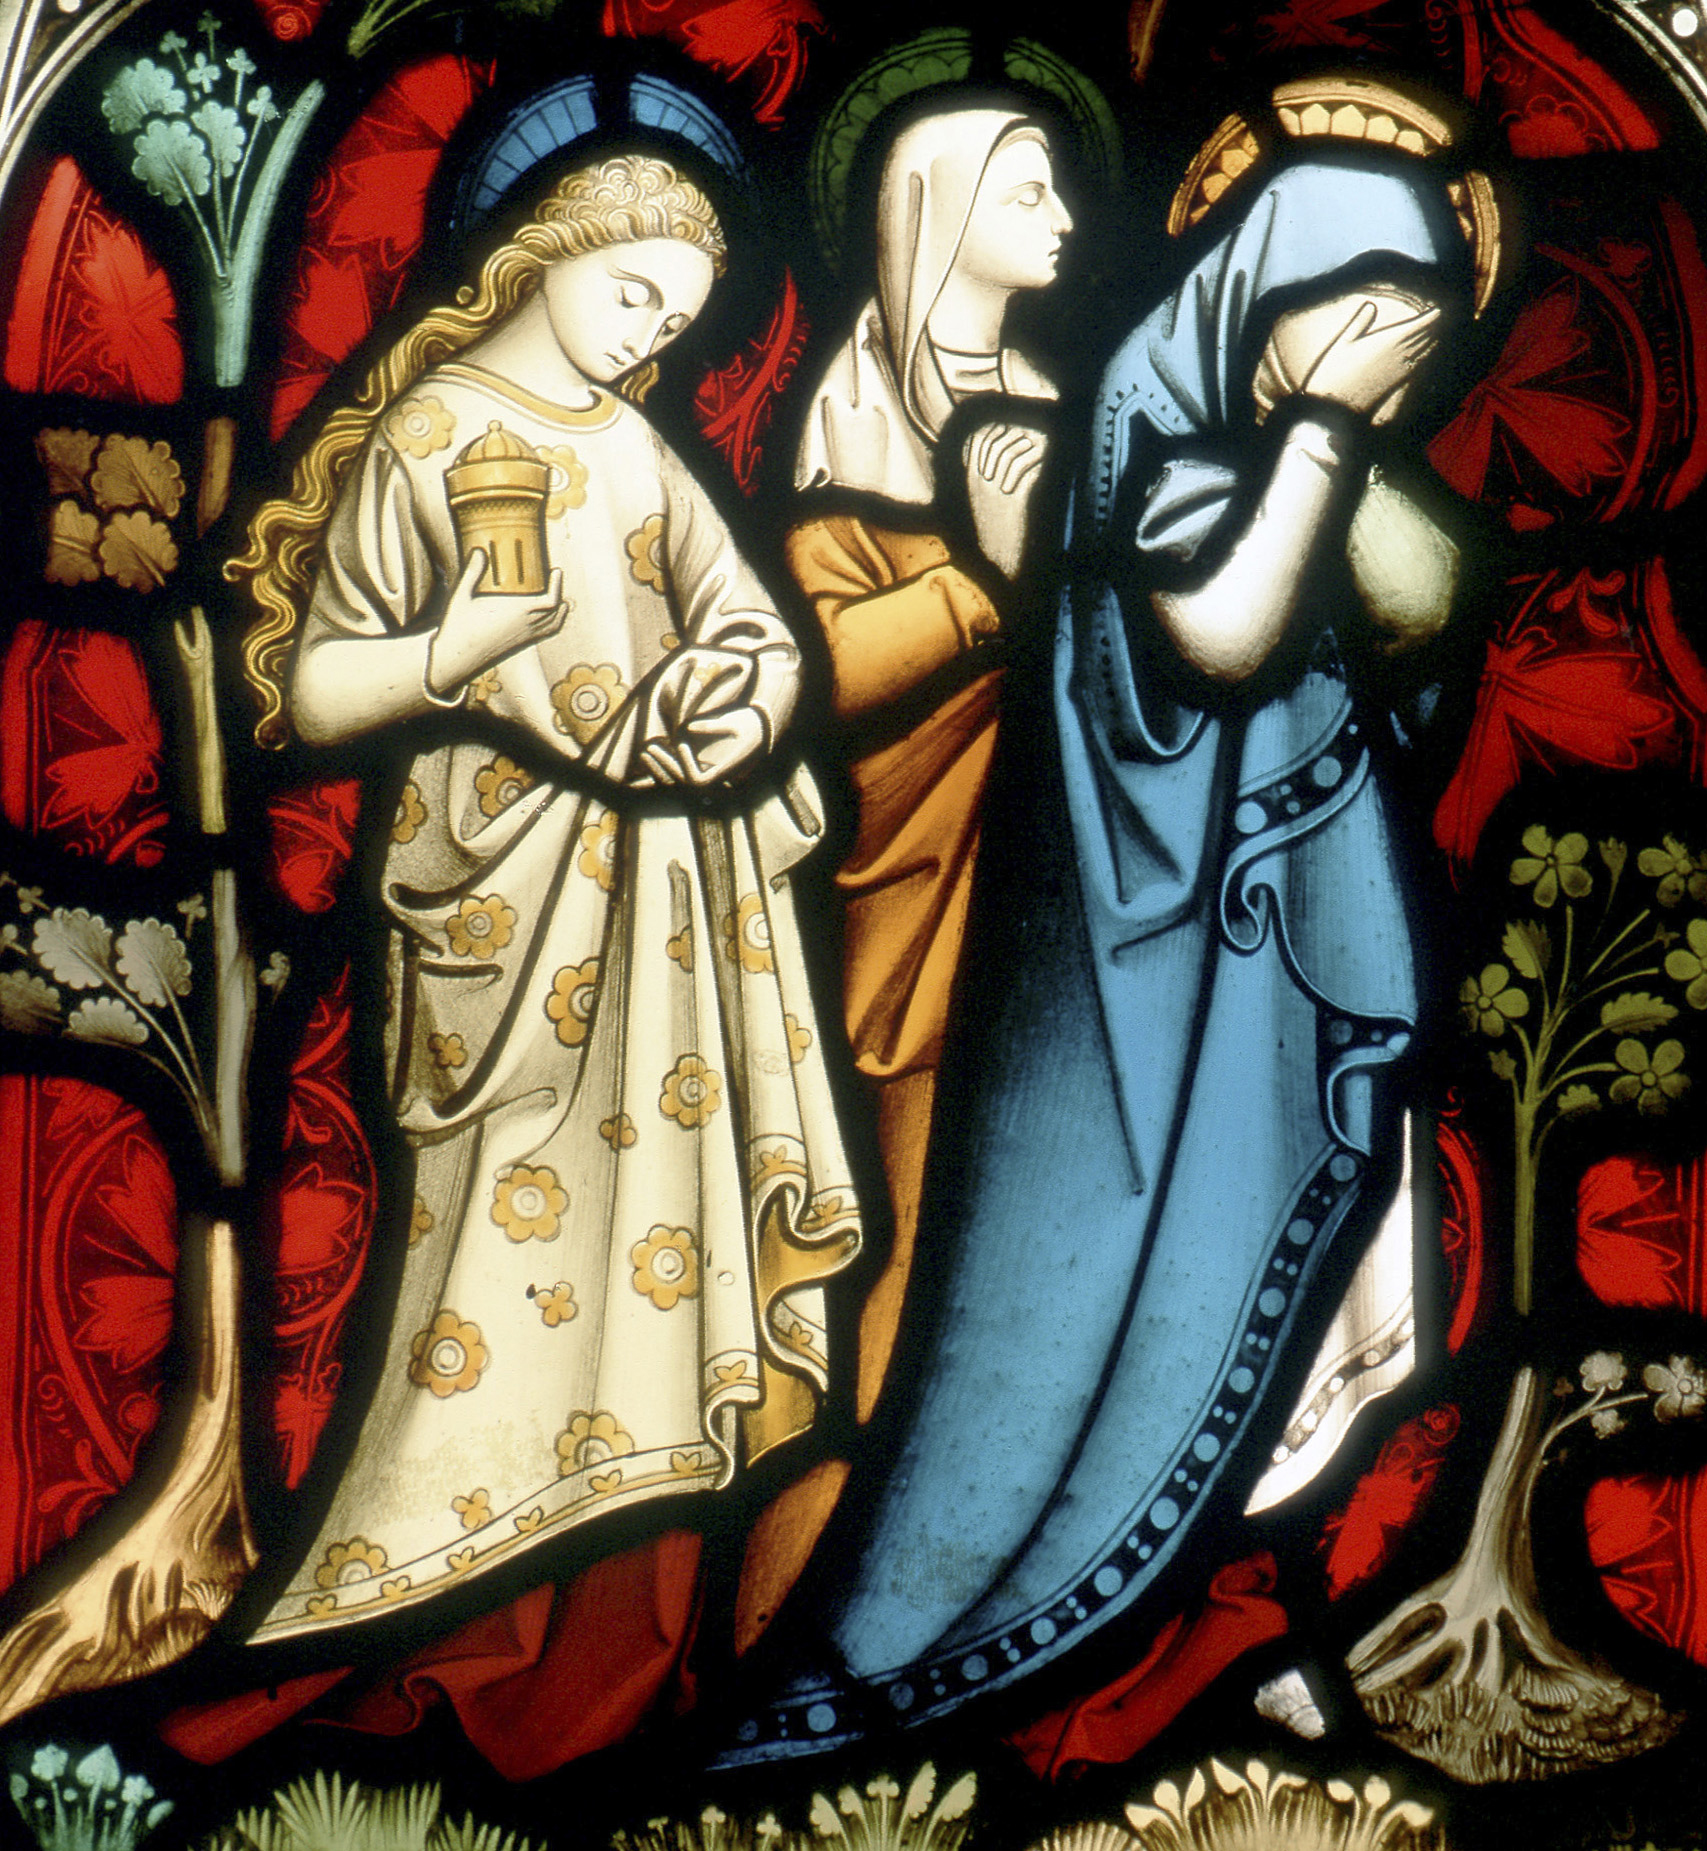 https://storiesfromstphilips.files.wordpress.com/2015/03/stained-glass-for-holy-saturday.jpg